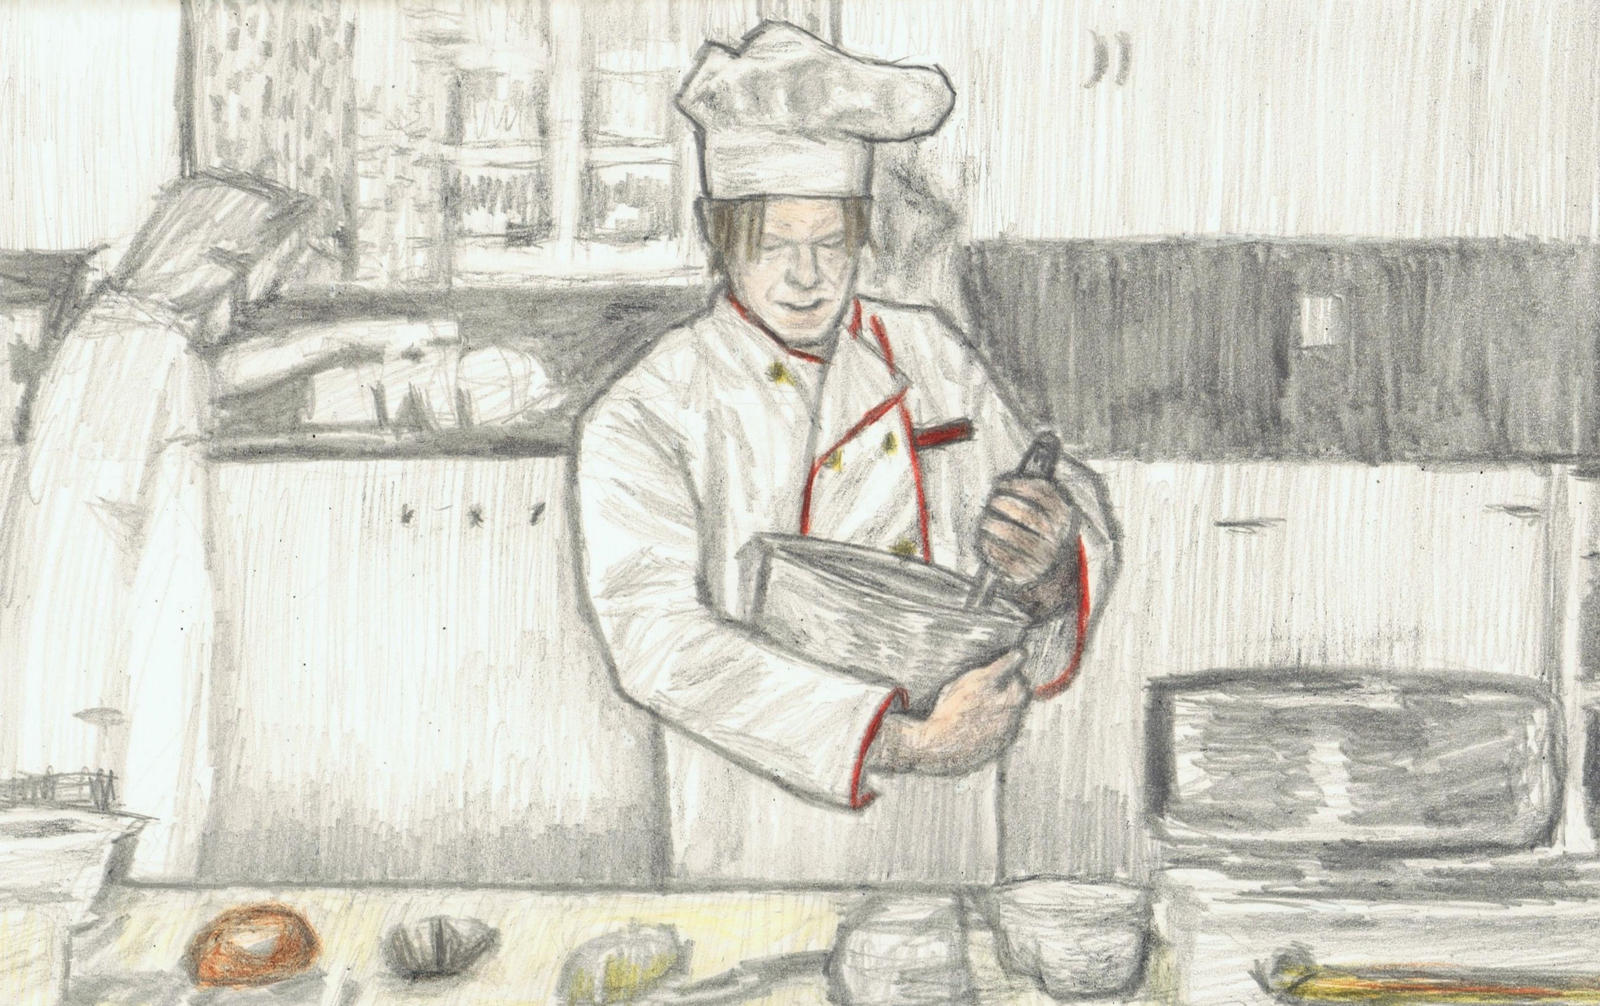 David Bowie as a chef by gagambo